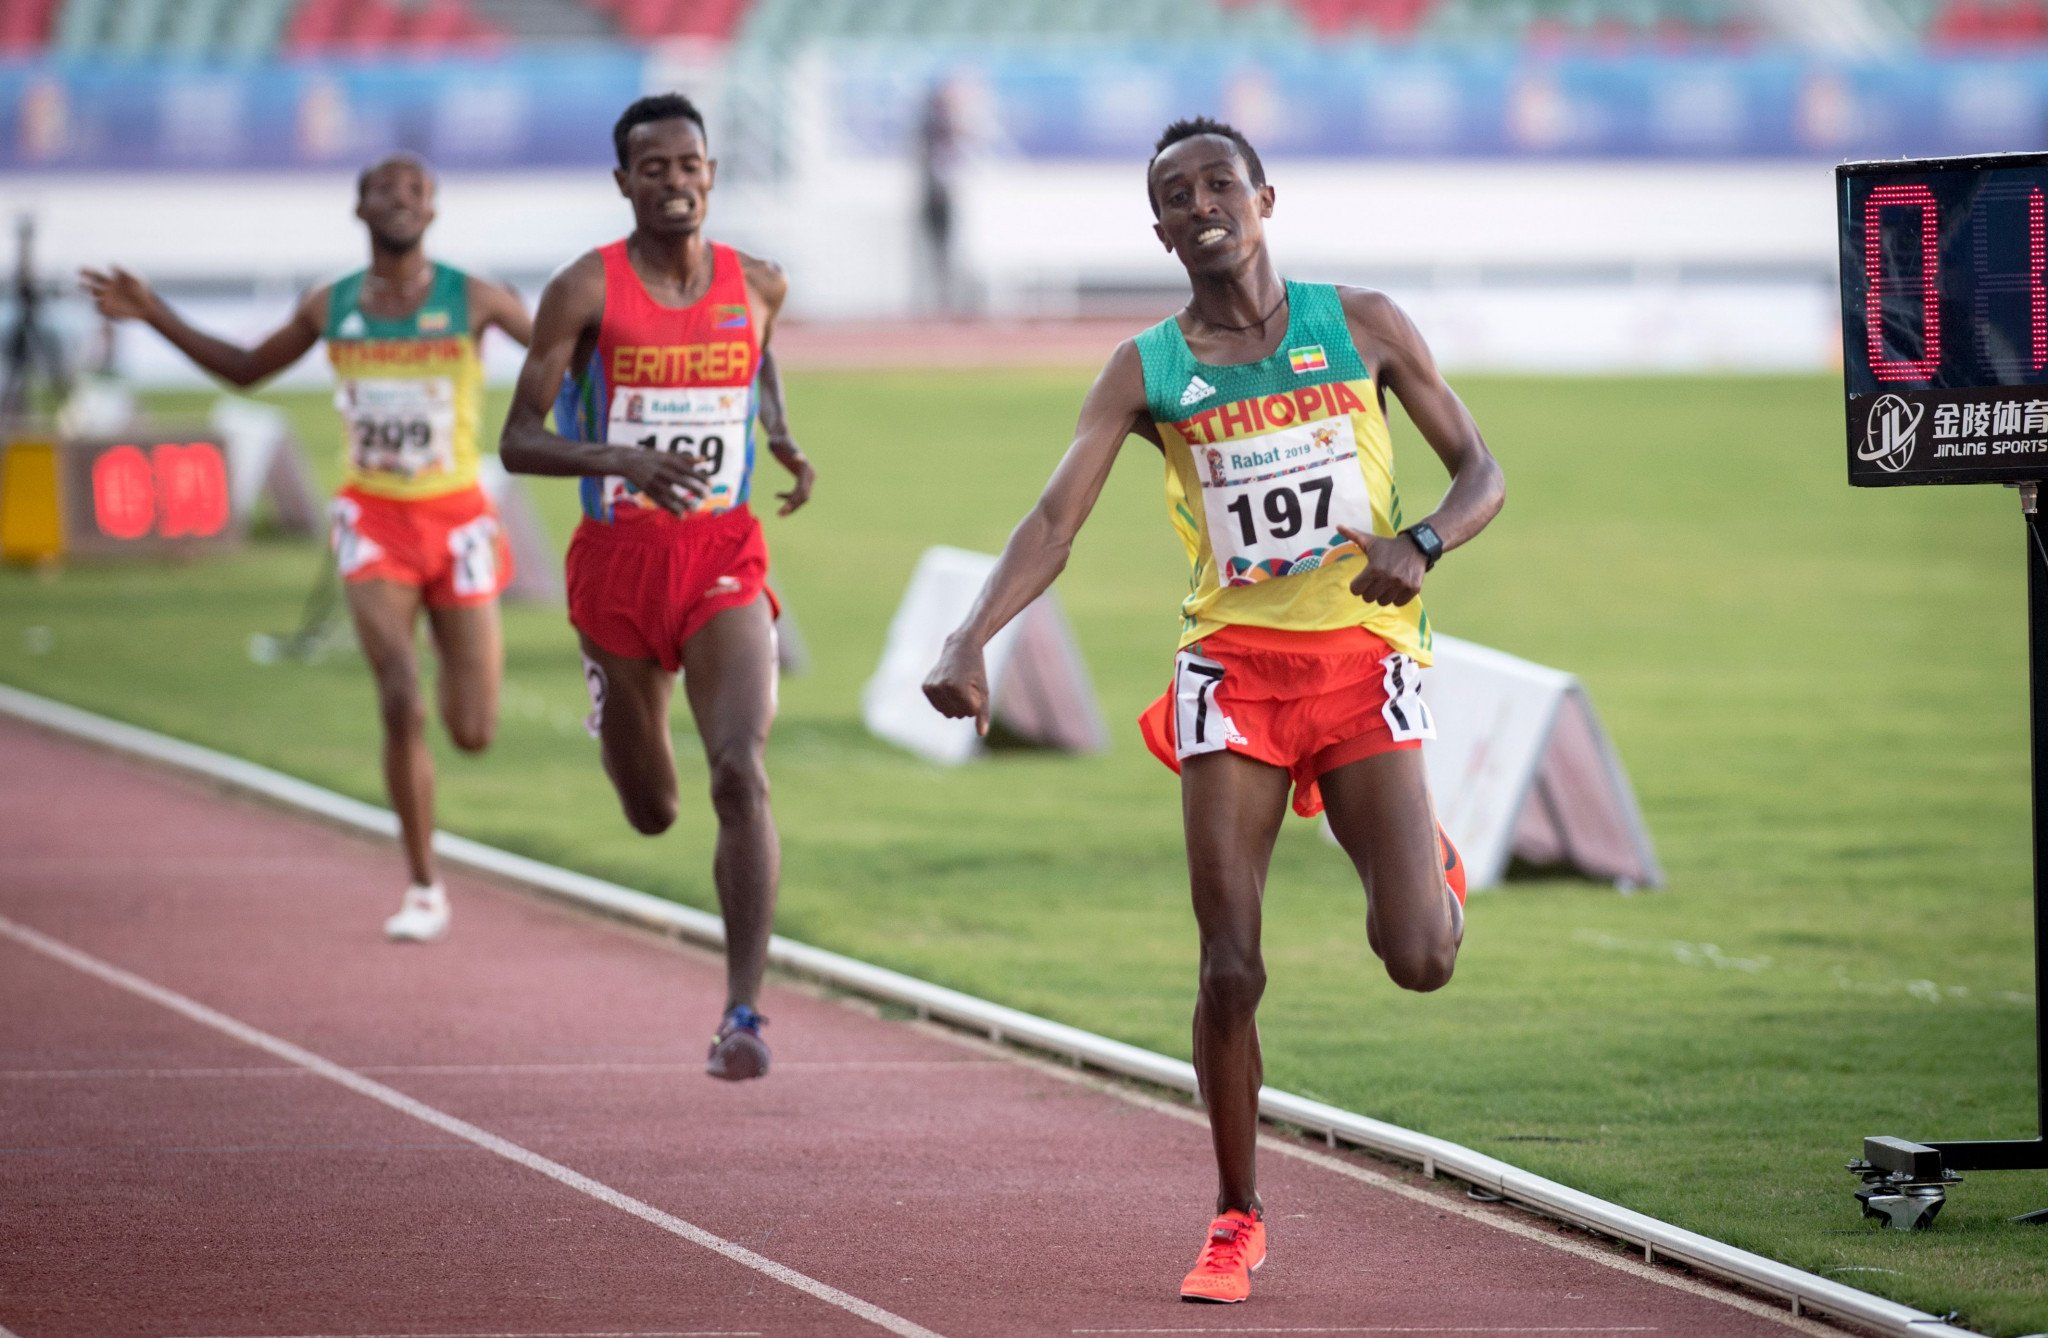 AFRICAN GAMES 10,000 METRES CHAMPION TESTS POSITIVE FOR DRUG